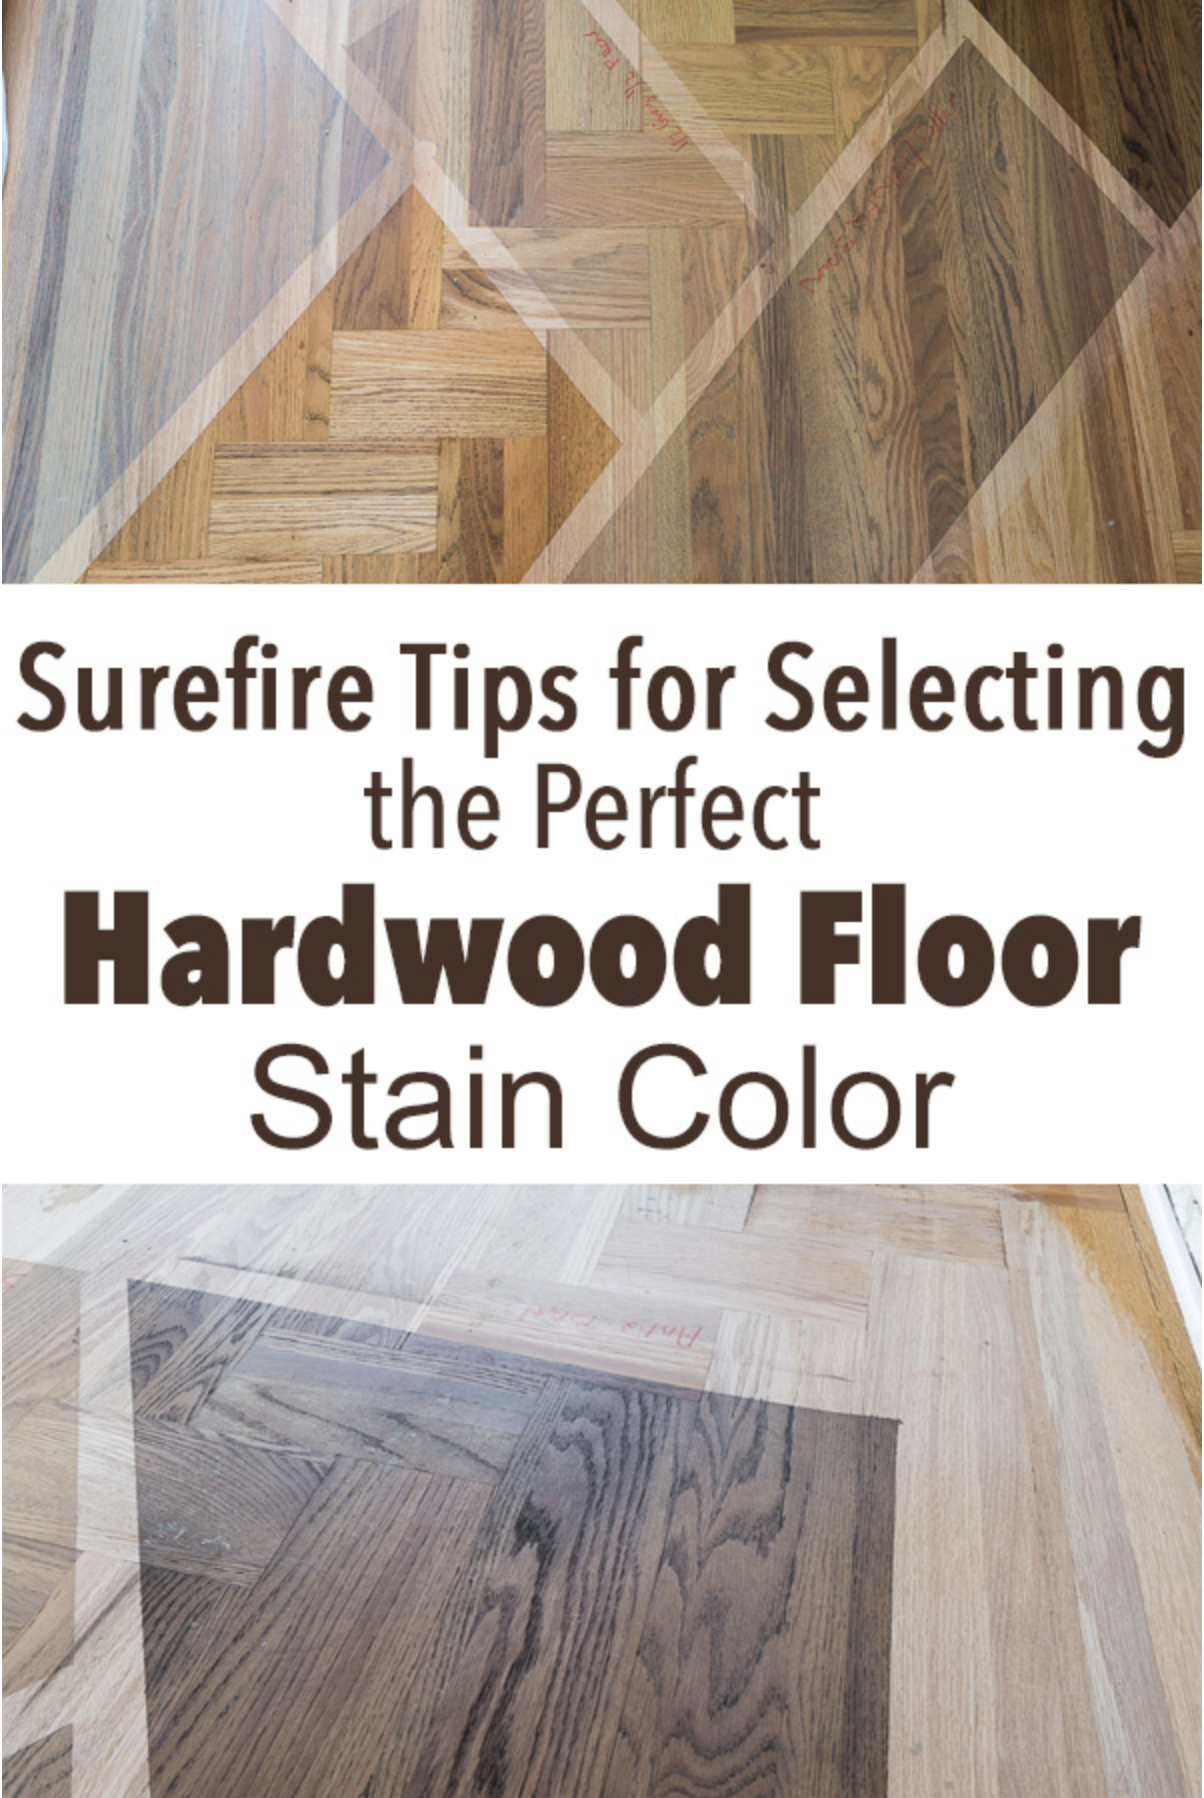 Choosing A Wood Floor Stain Color For My Kitchen Living Room Wood Floor Stain Colors Floor Stain Colors Choosing Wood Floors